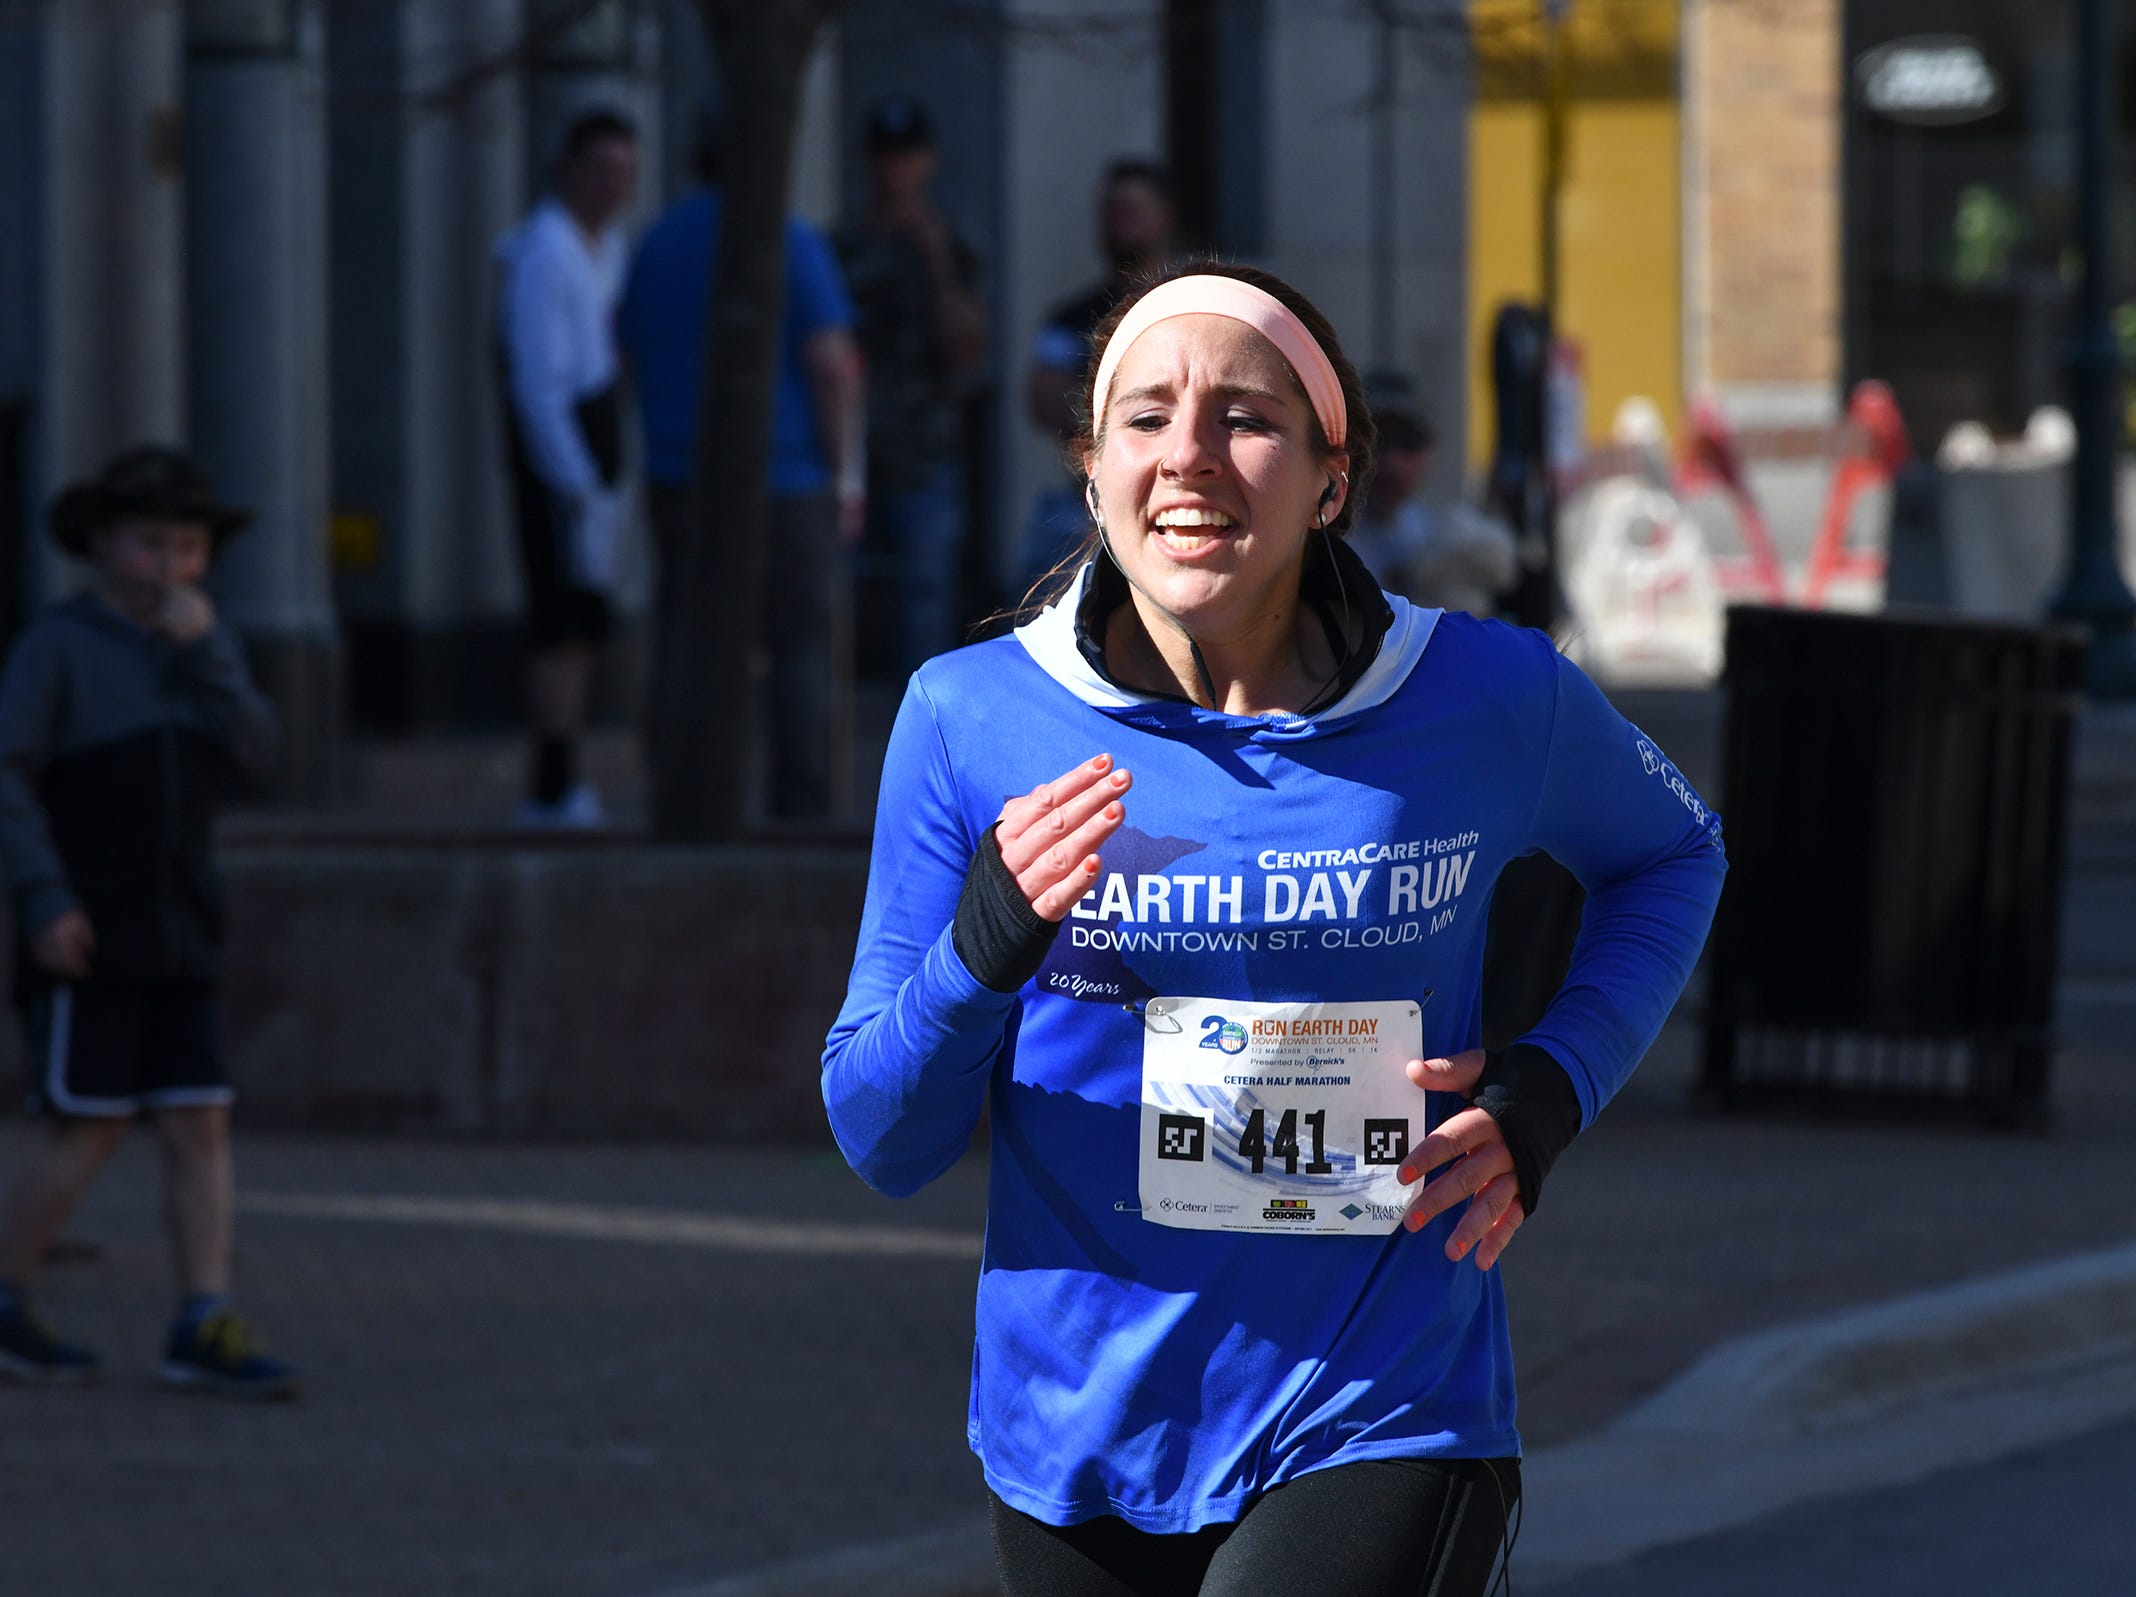 Megan Frisbie approaches the finish line during the Cetera Half Marathon Saturday, April 20, in downtown St. Cloud.